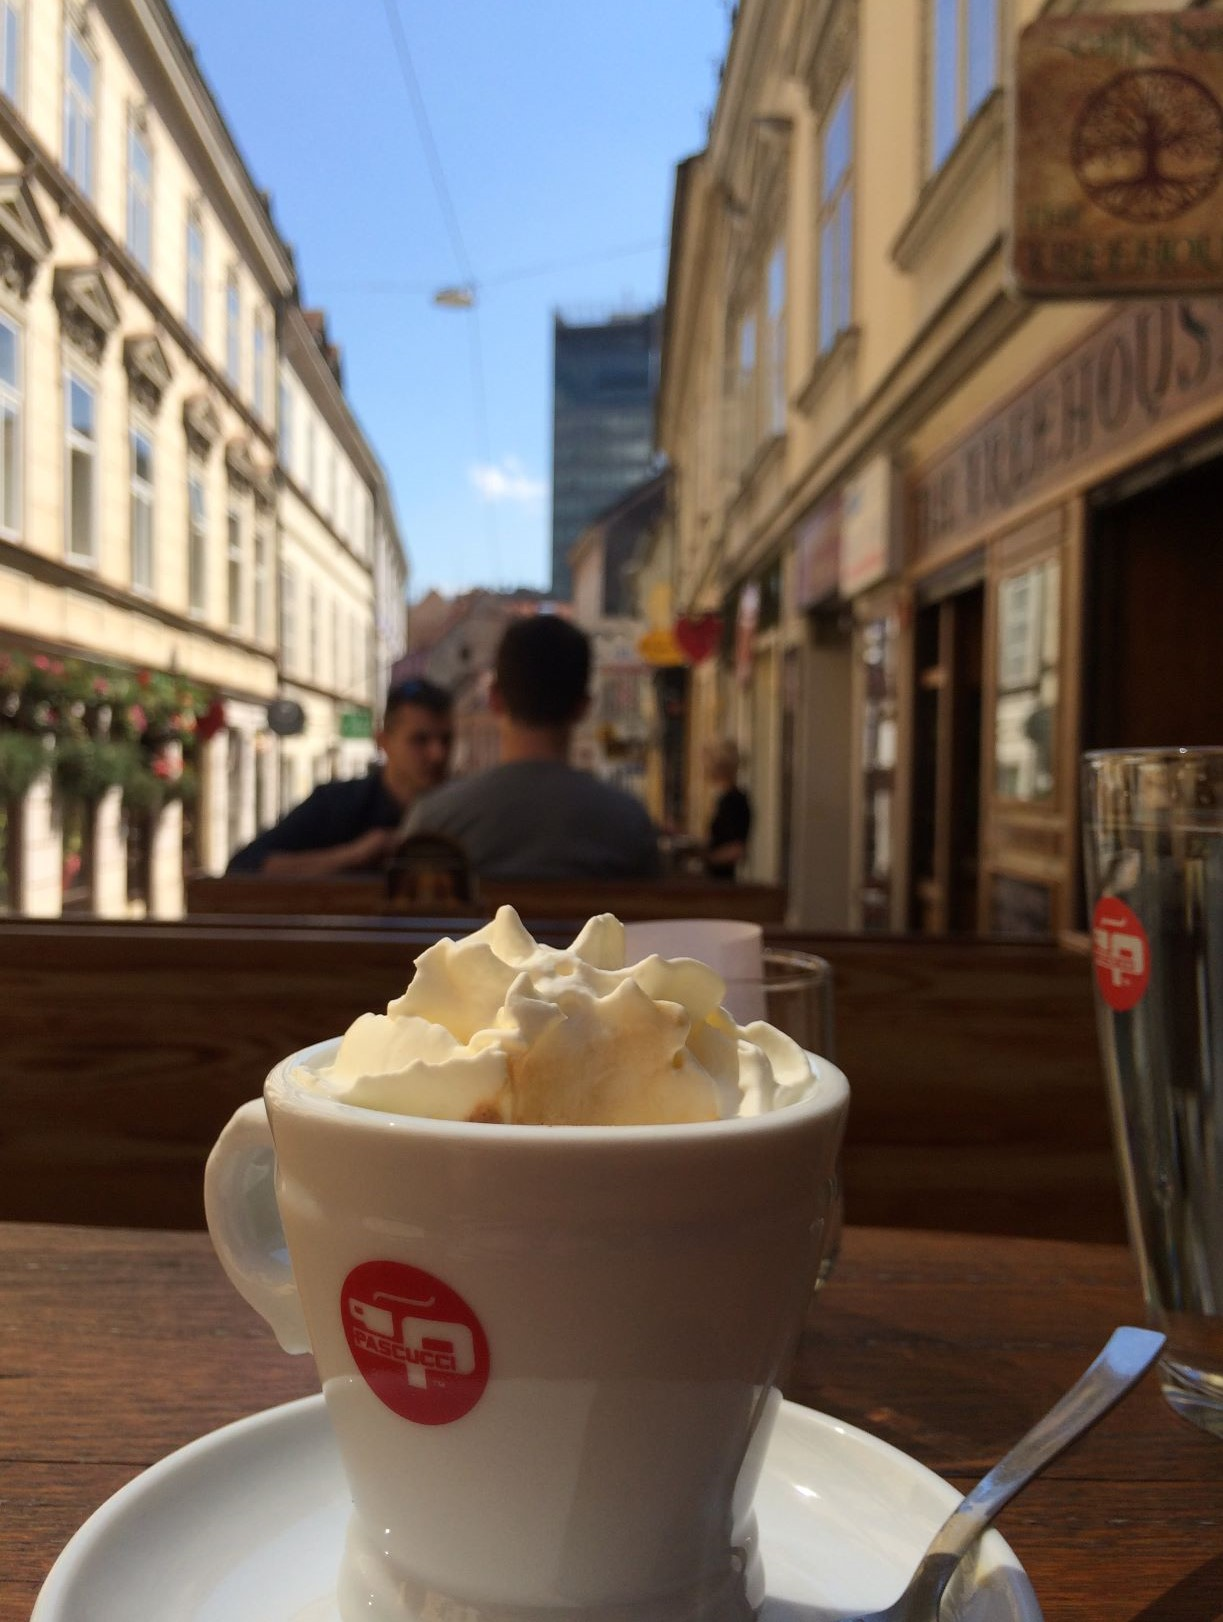 Kafa sa šlagom, or a shot of espresso covered in homemade whipped cream. Zagreb, May 2018.